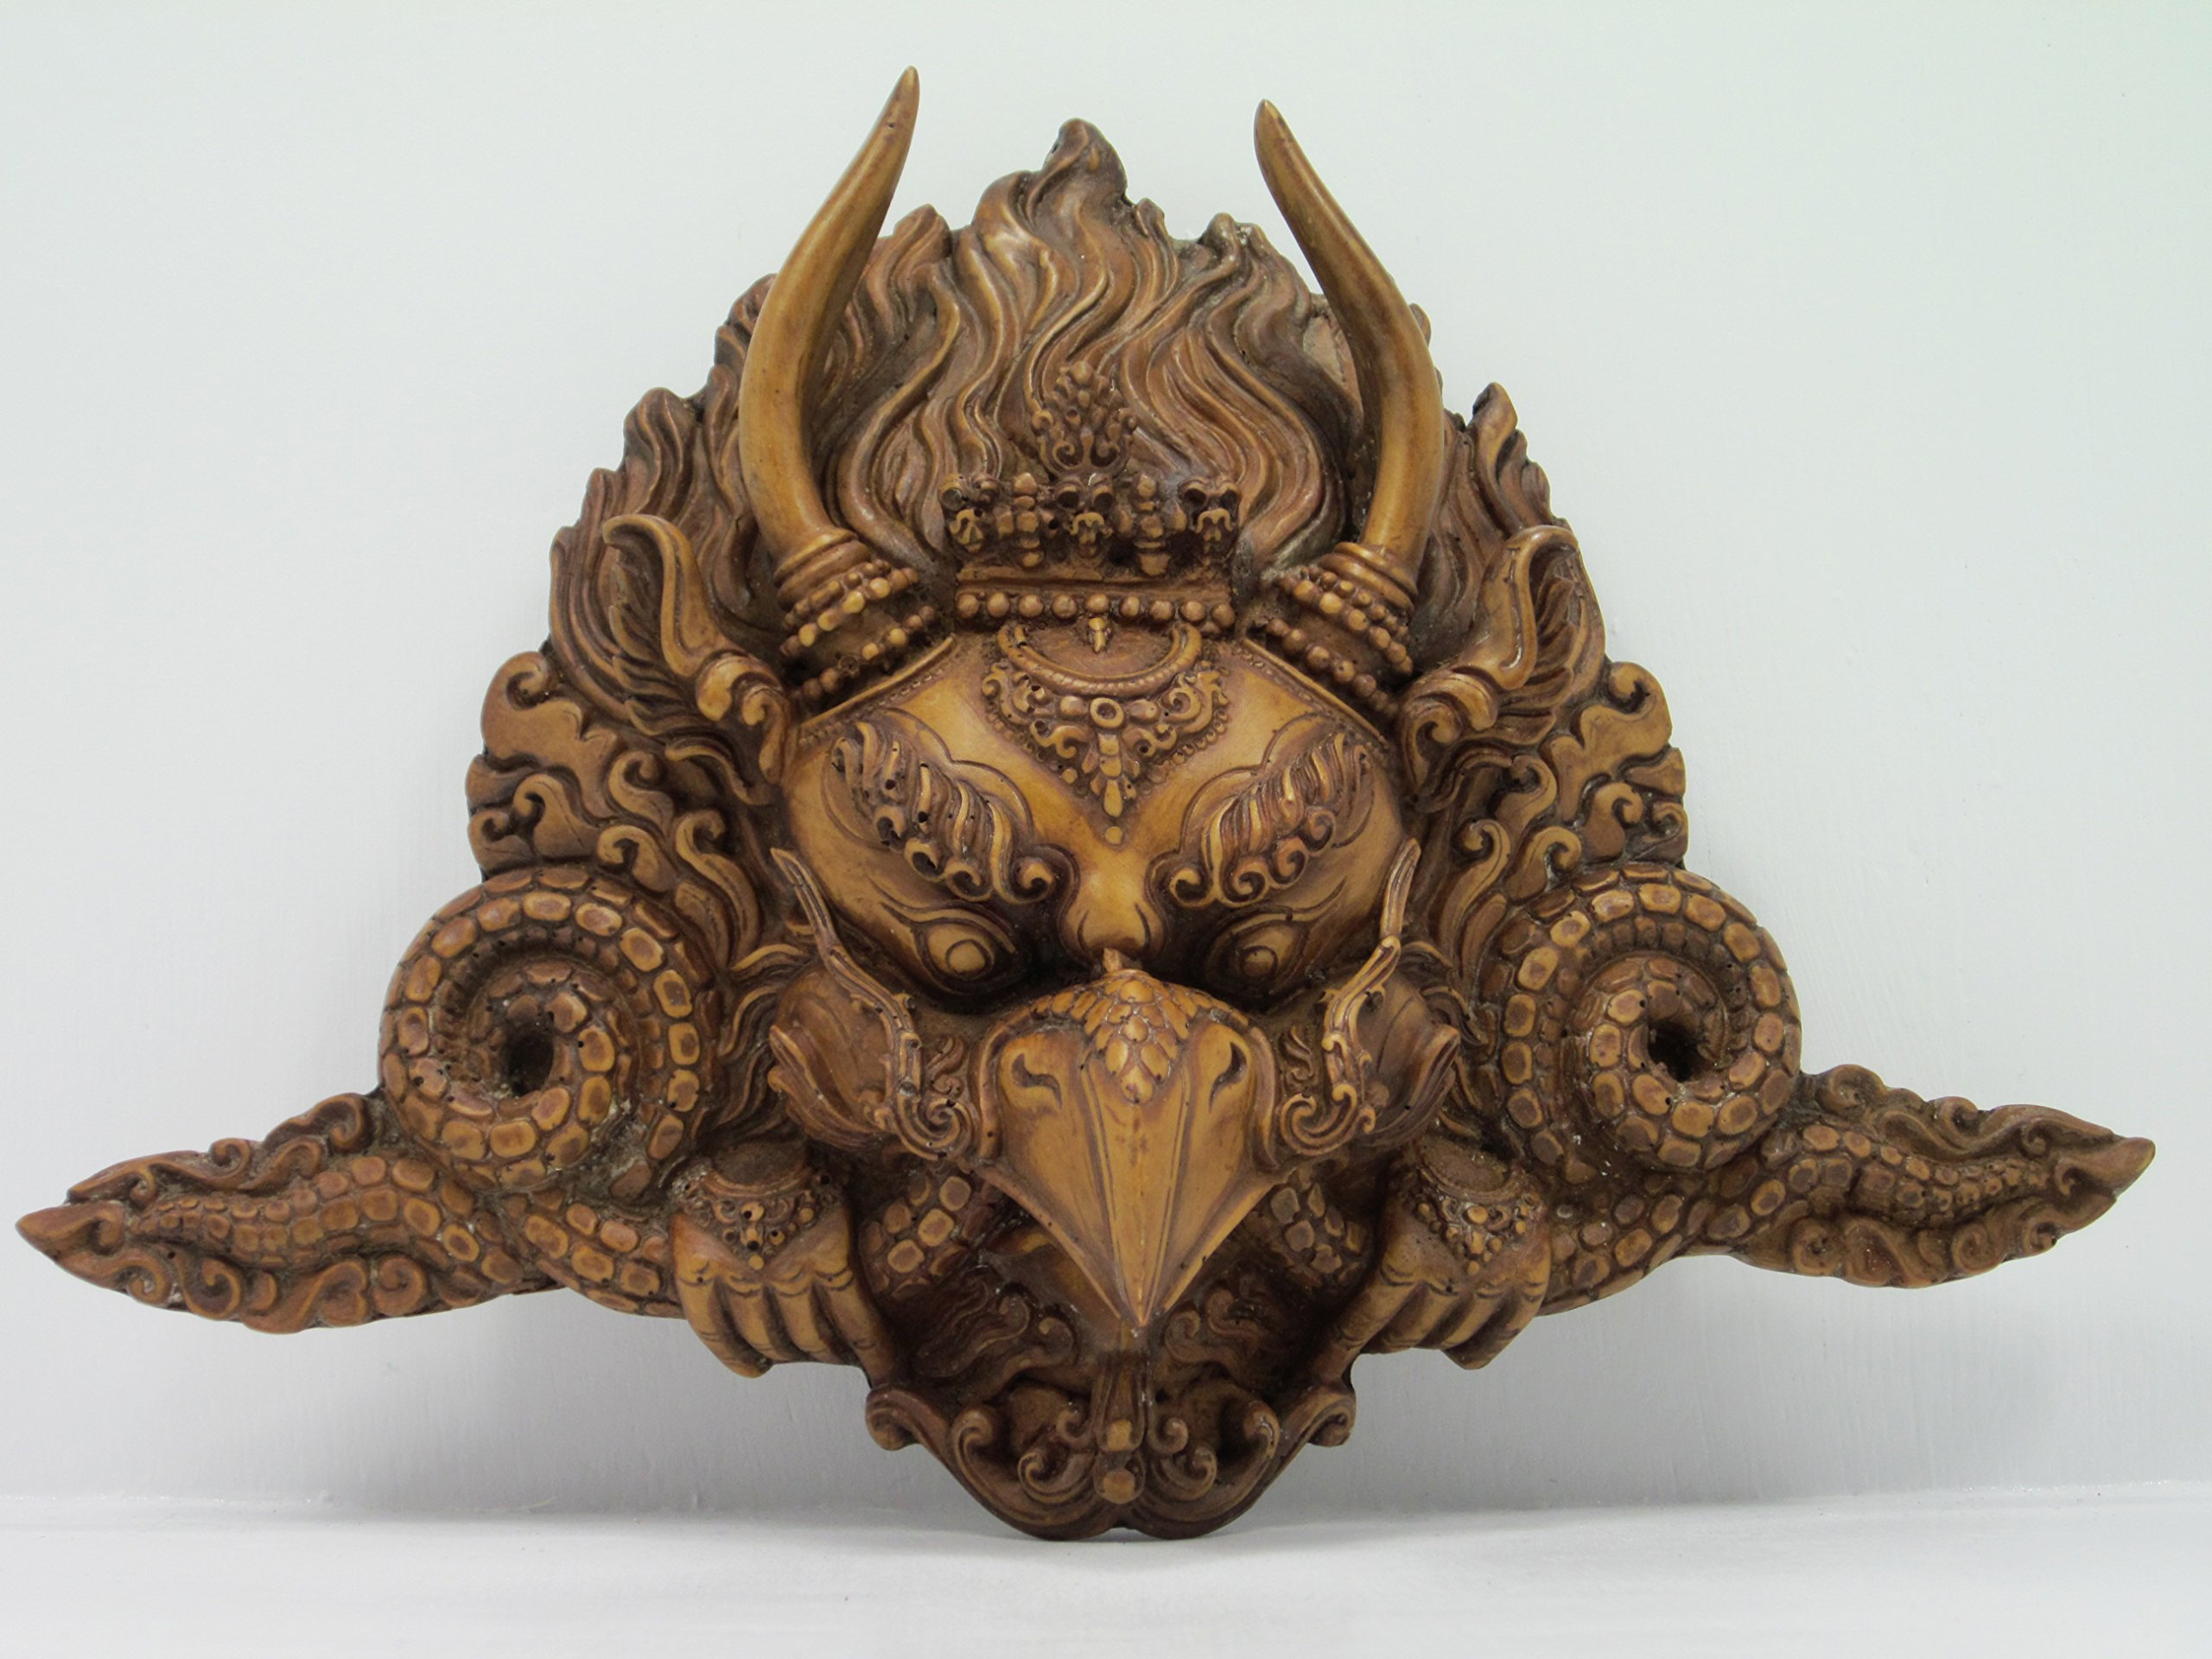 joliefran AKA Ngawang Lhamo Large & Beautifully Detailed Resin Garuda Mask from Nepal